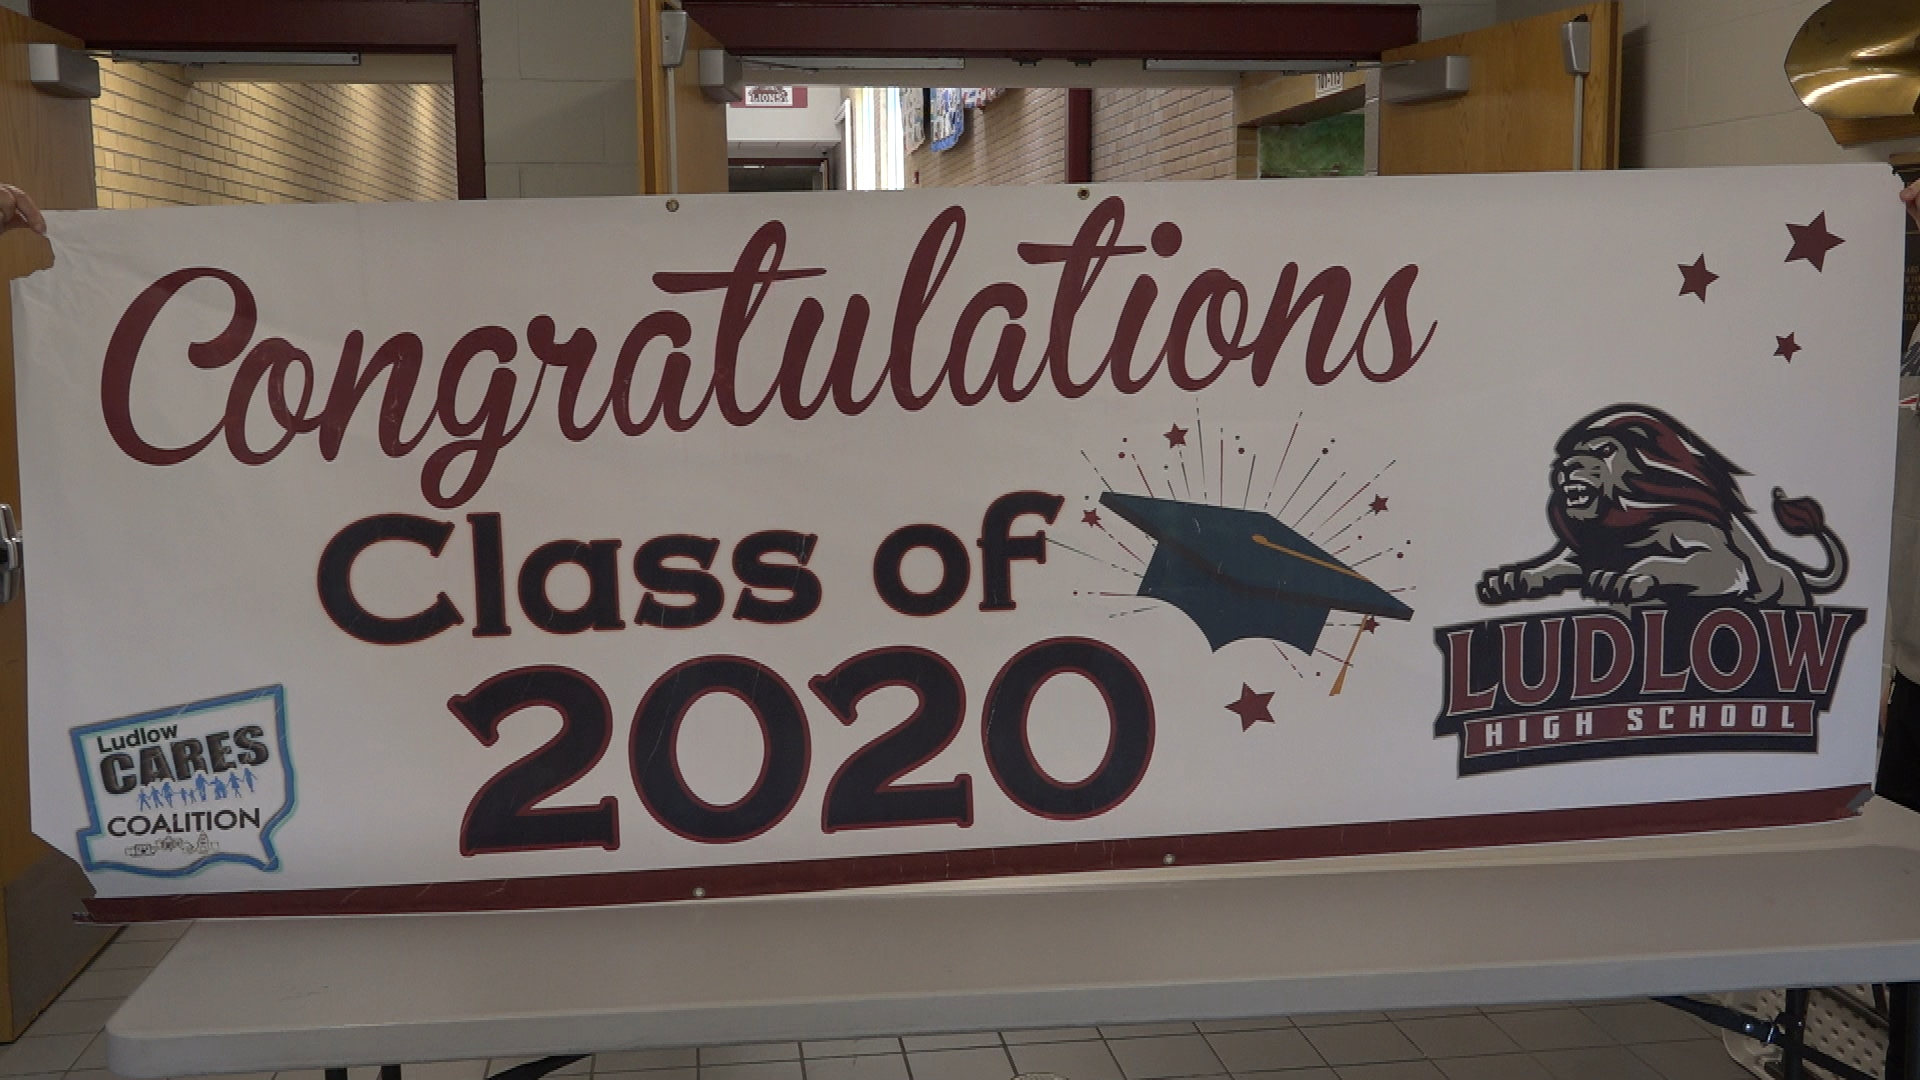 With schools closed, schools are coming up with creative ways to honor graduates, like holding a town-wide parade to honor the Ludlow High Class of 2020.